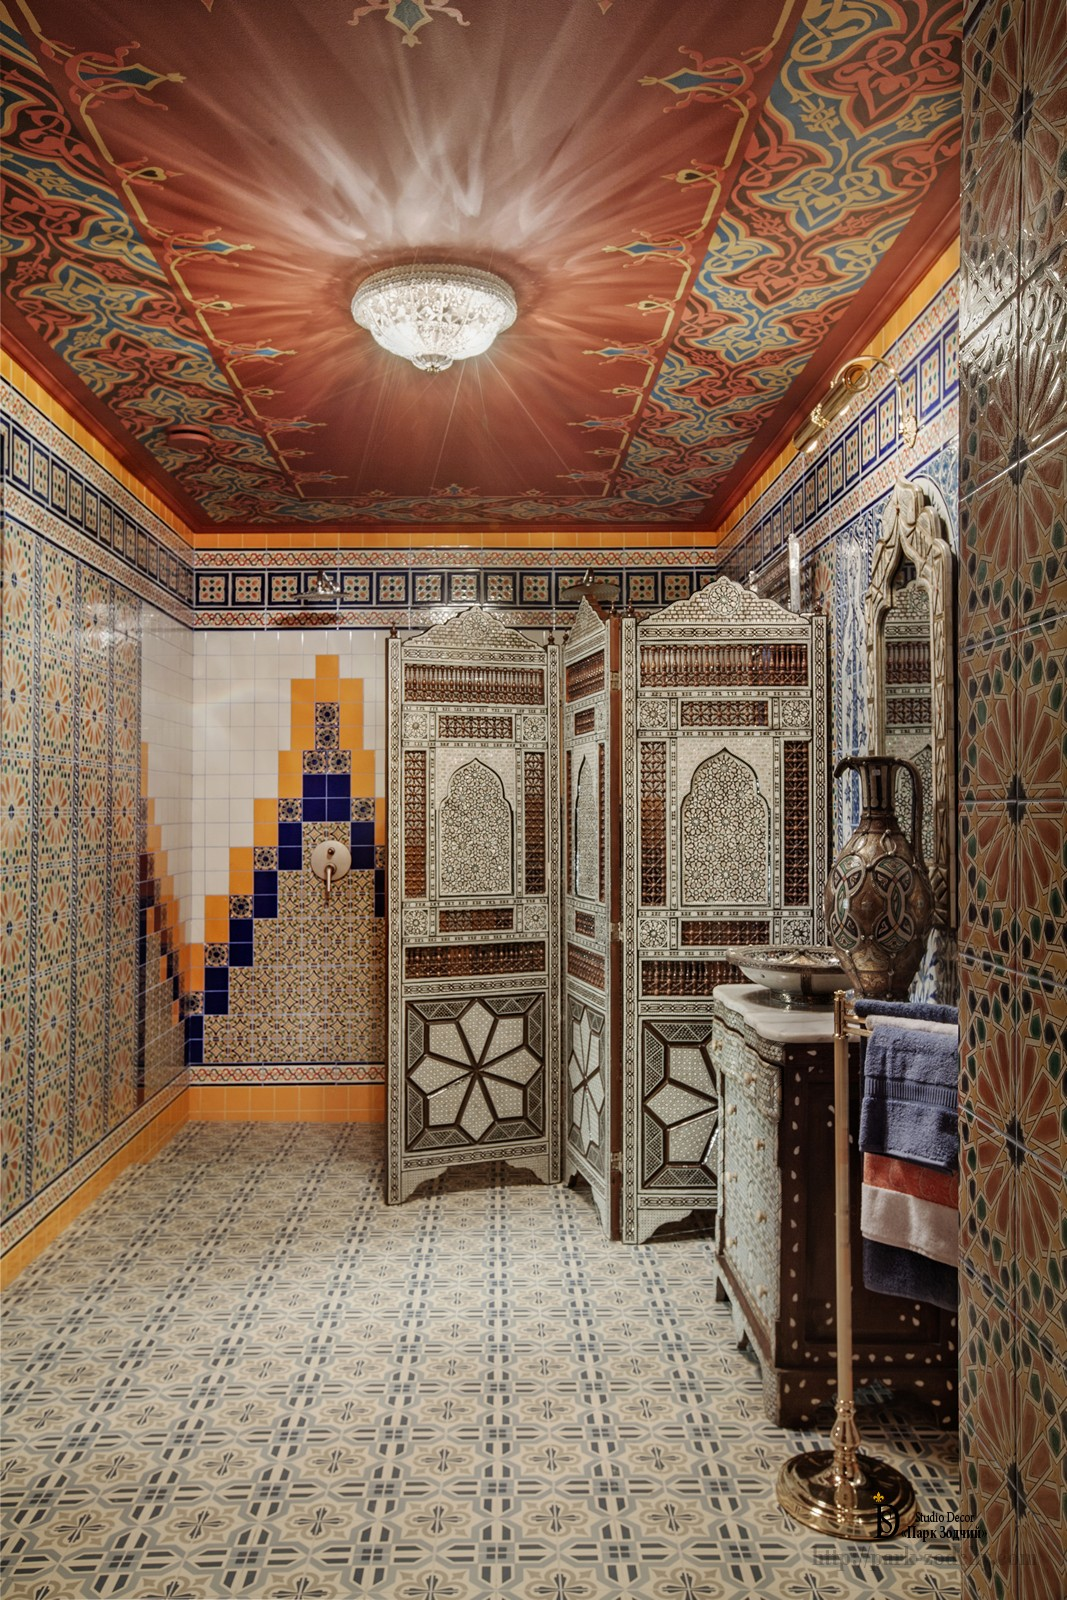 The interior area of Hammam with a painted ceiling